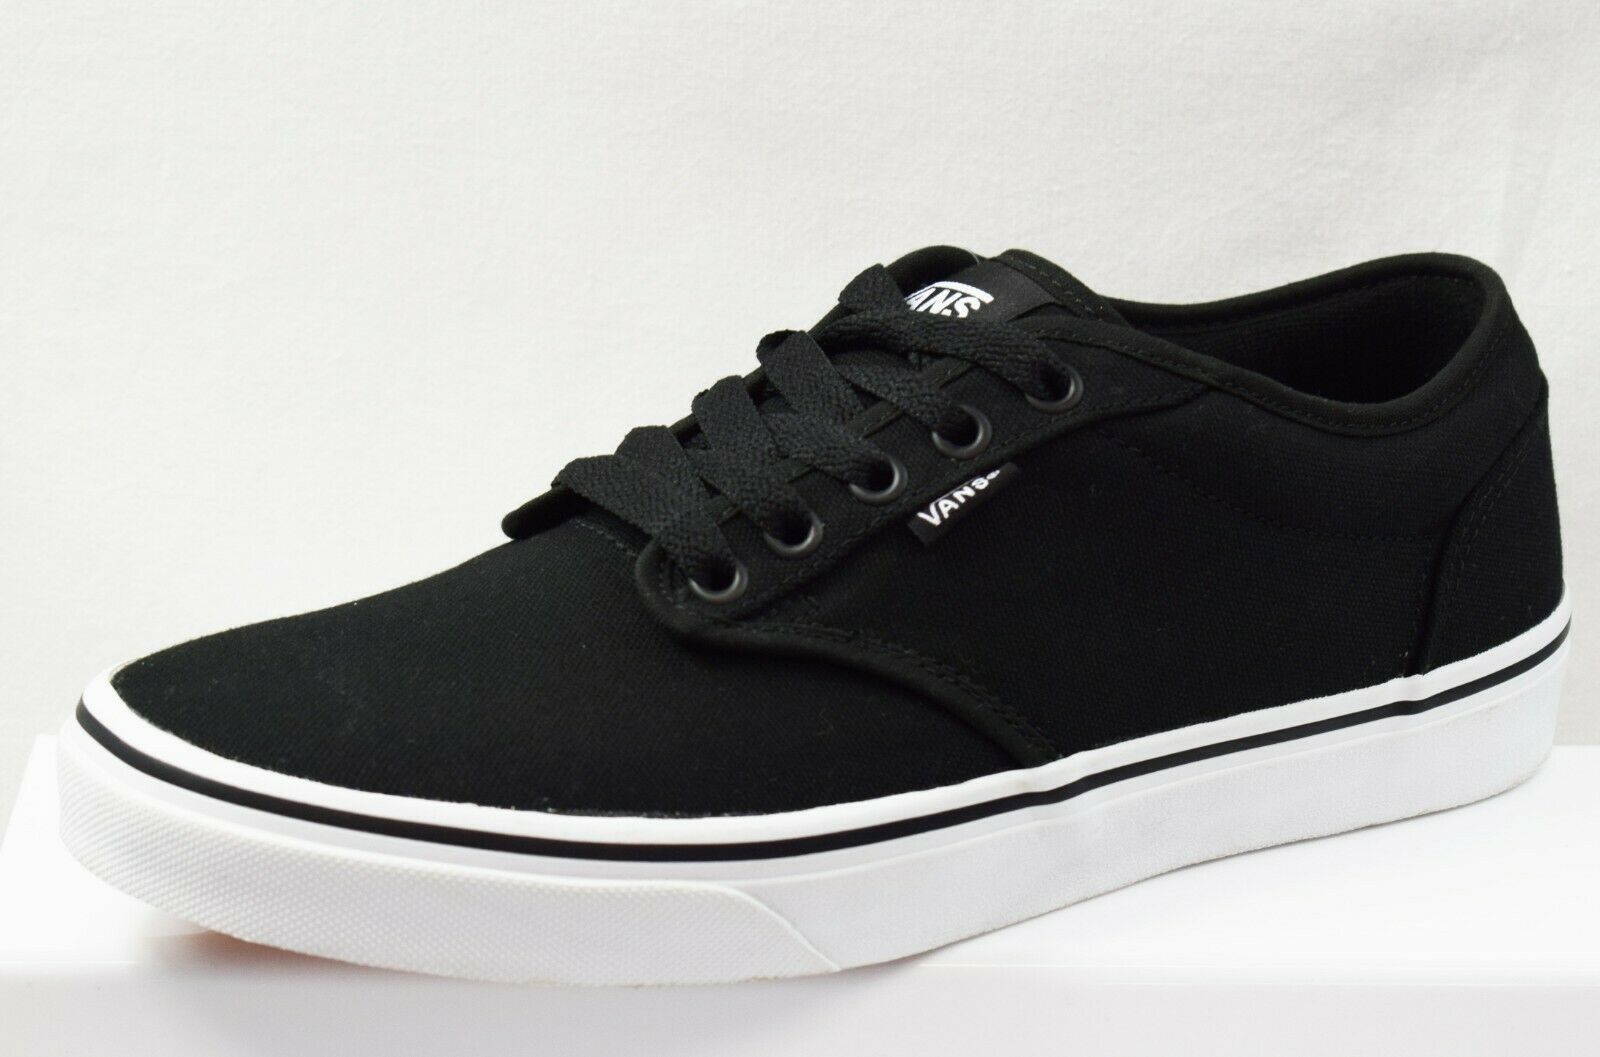 VANS ATWOOD LOW MEN'S SHOES BRAND NEW SIZE UK 6.5 (DT5)